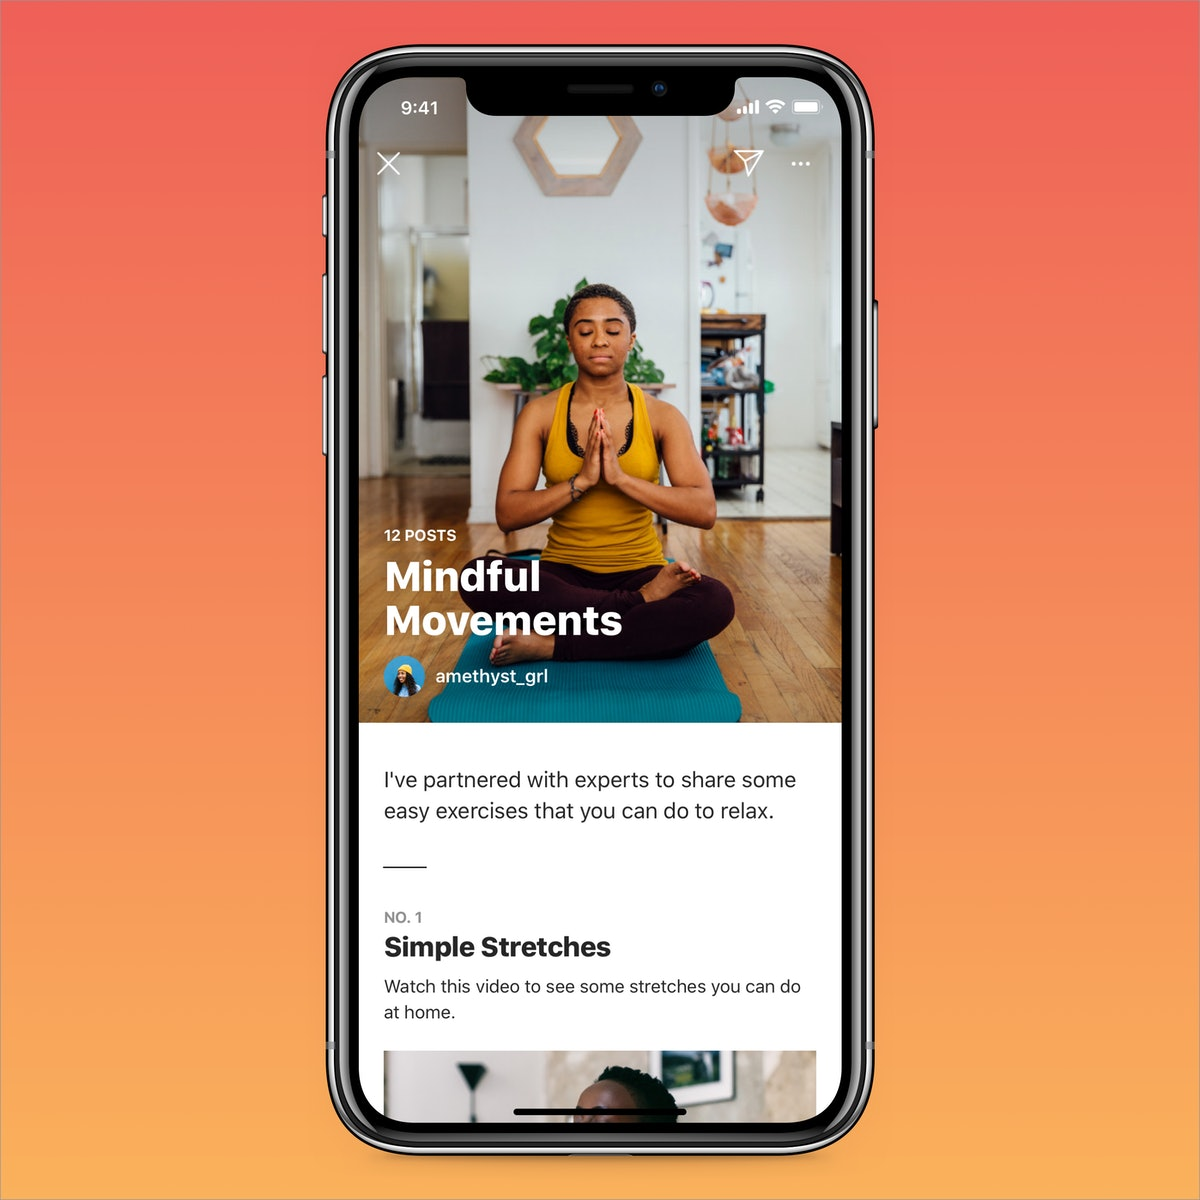 Instagram Guides can include content from the creator as well as other accounts.